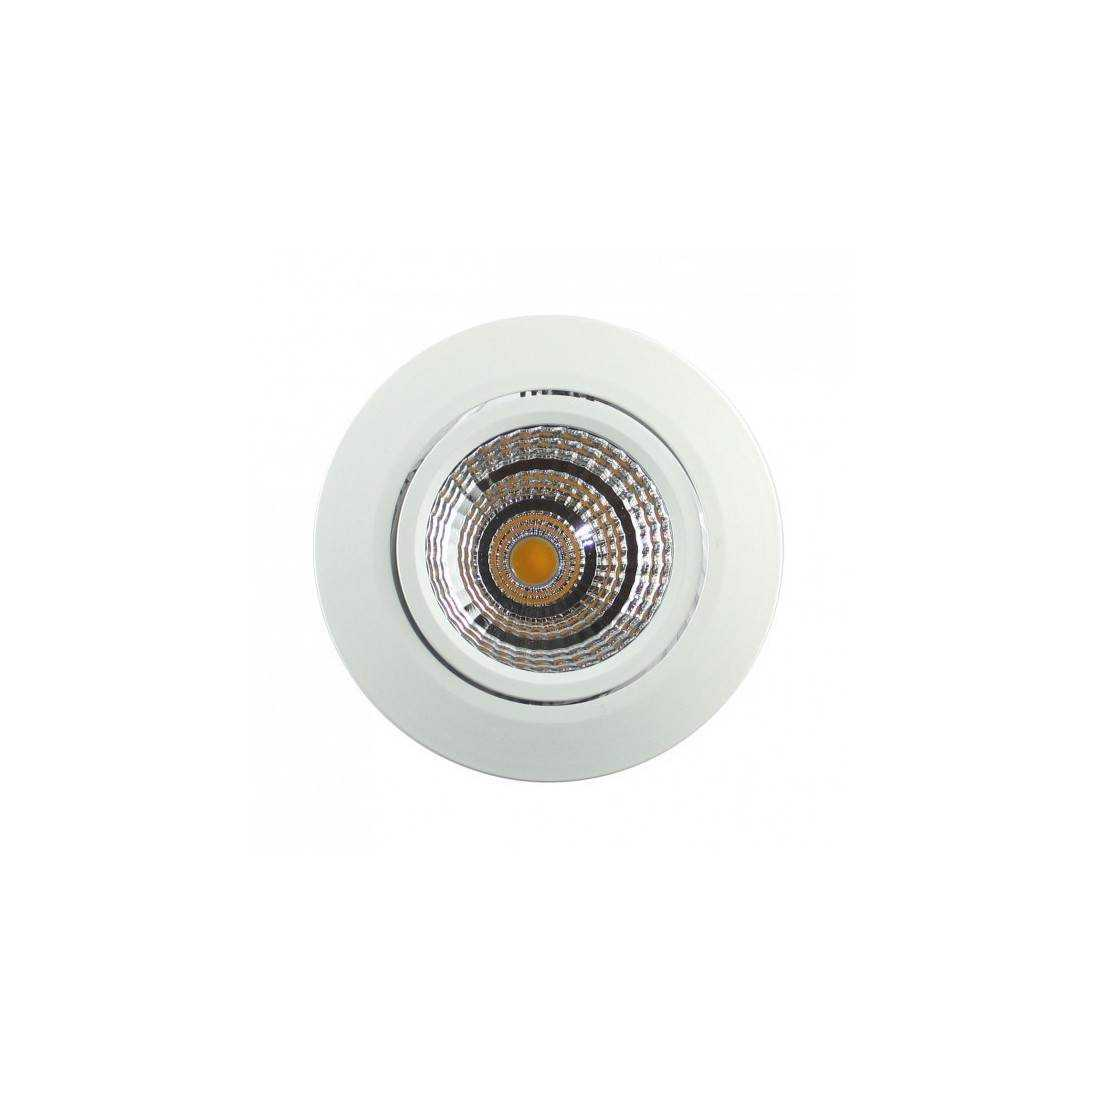 Spot LED Blanc Encastrable 7W - Sans alimentation